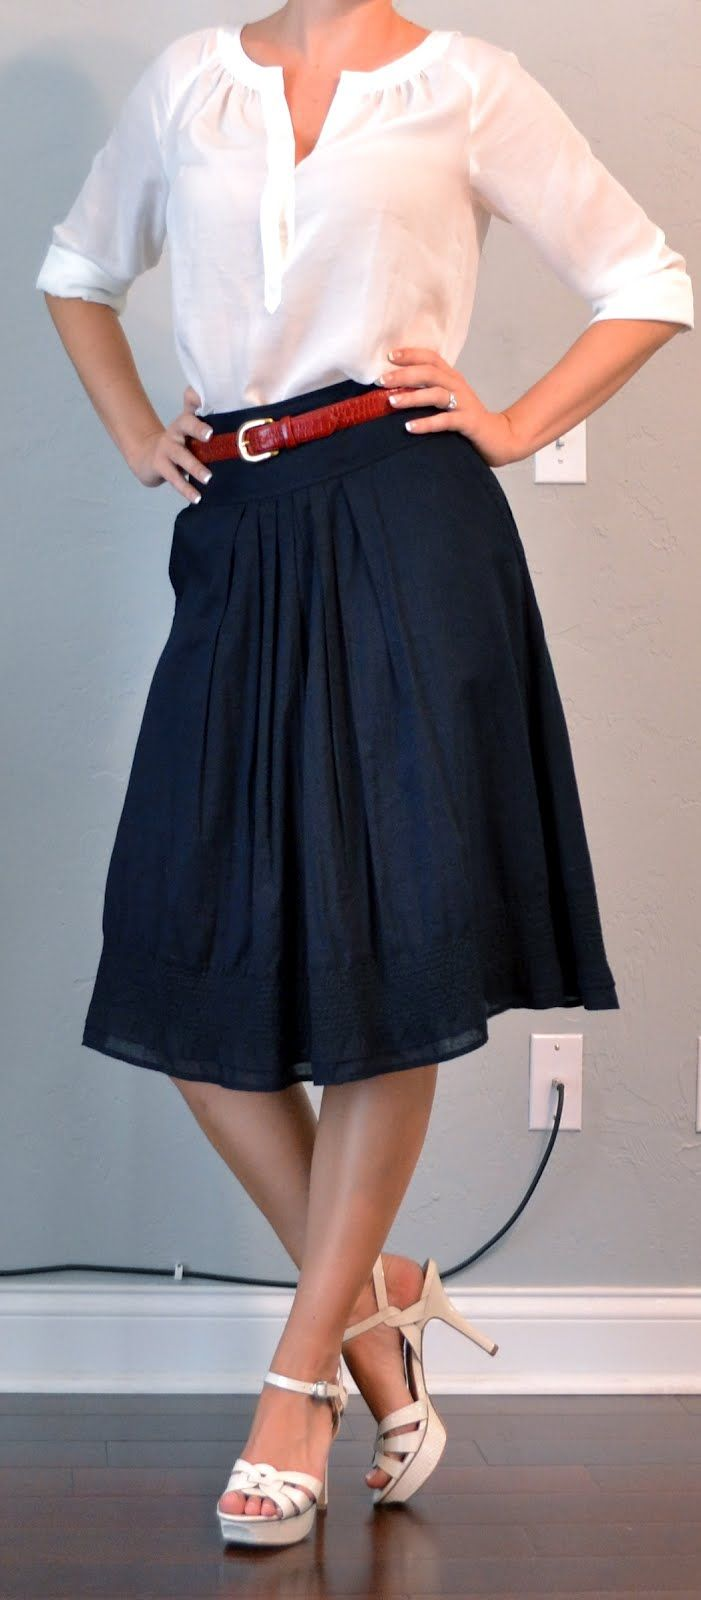 Top: White peasant blouse - LOFT; Bottom: Navy a-line skirt ...